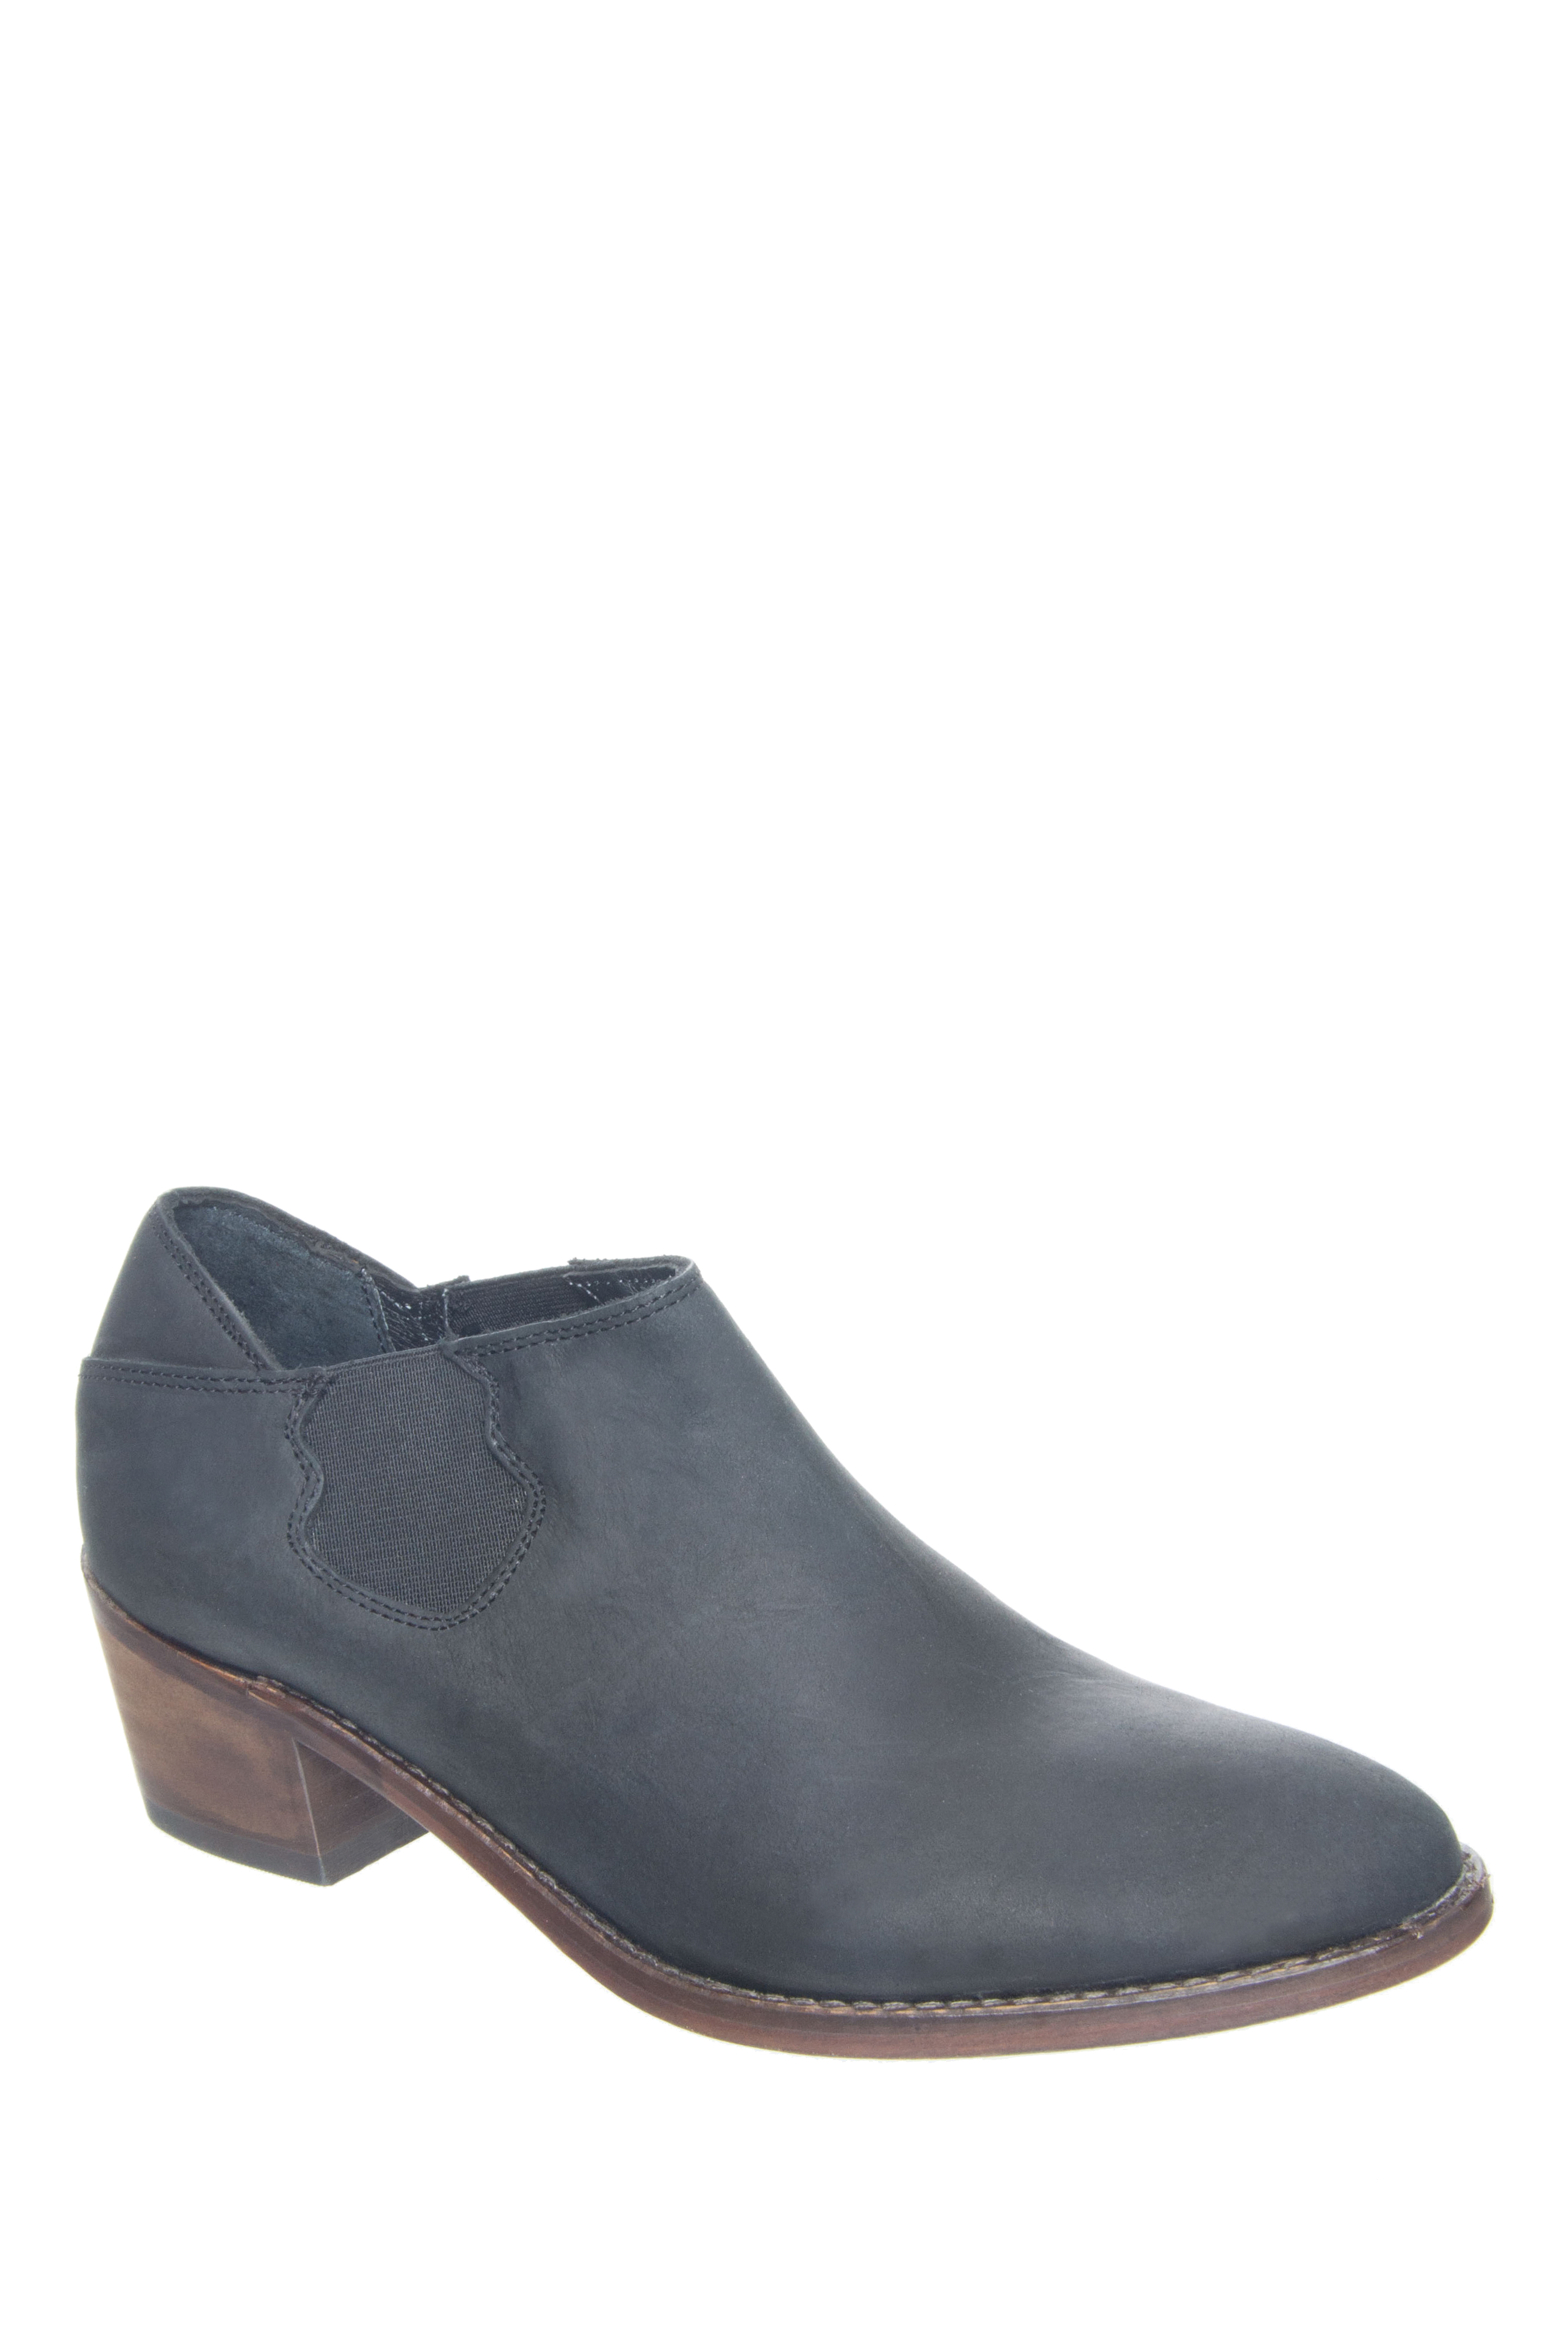 Wolverine 1883 Alice Slip On Boots - Black